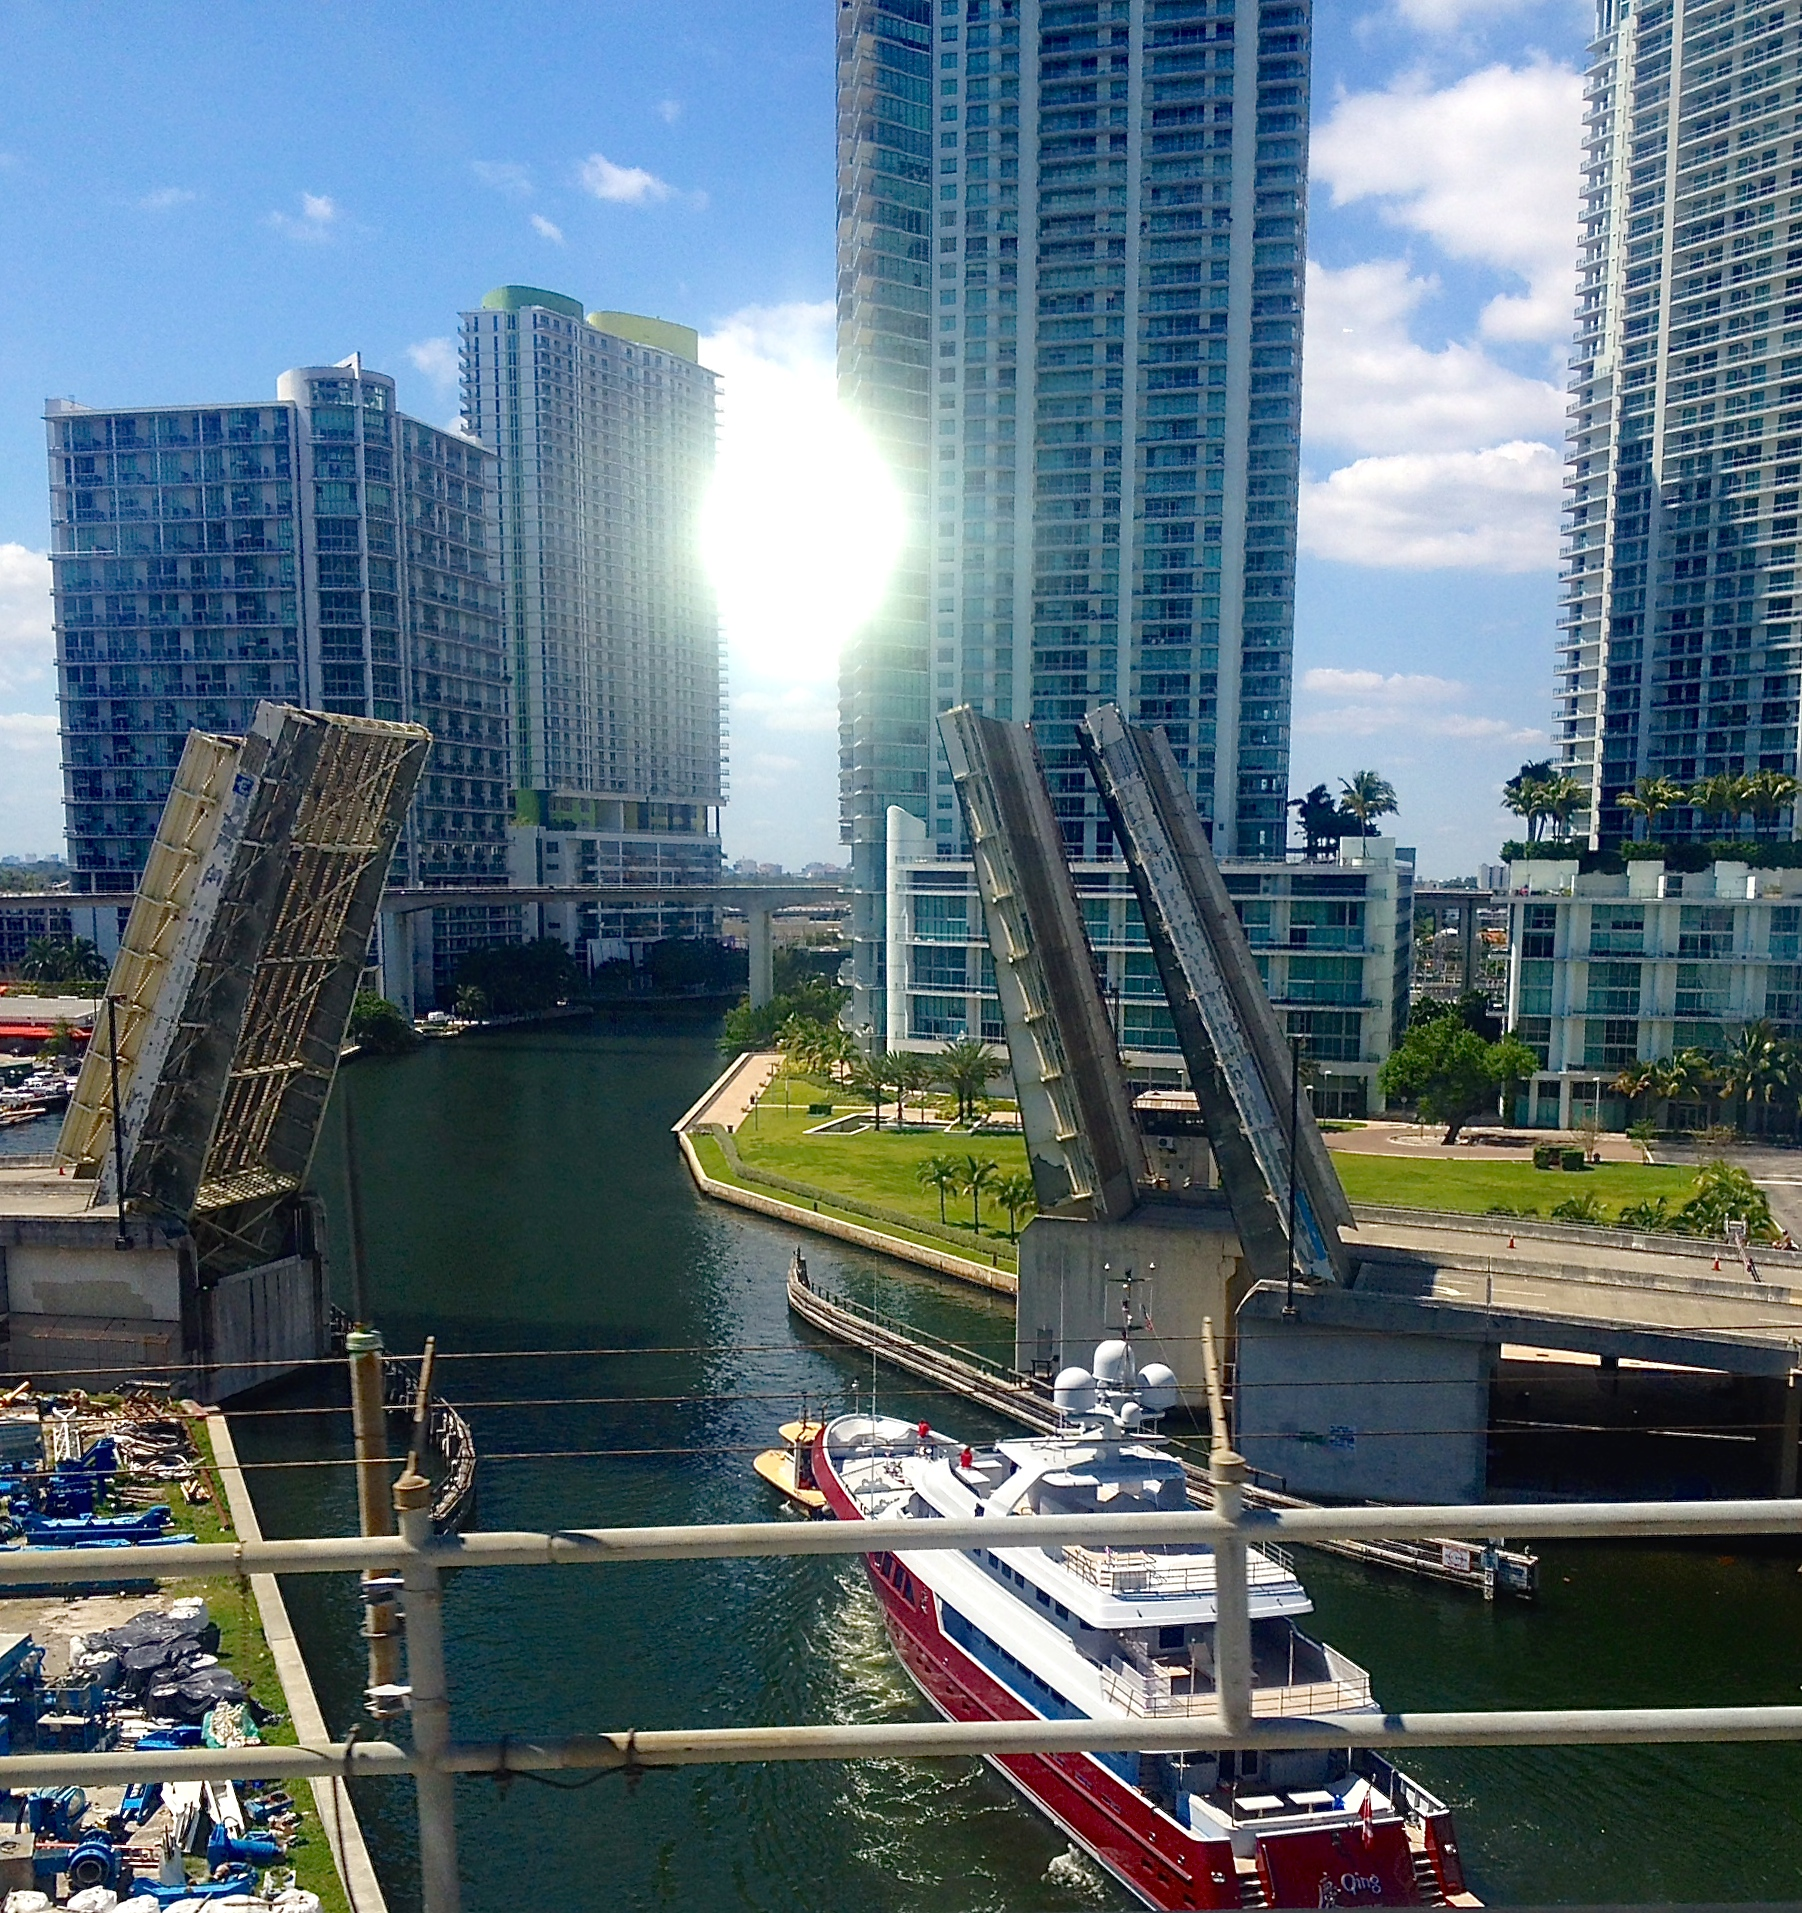 Miami Avenue Bridge open by request of  Qing, a 46-meter Cayman Islands boat that just a couple of months ago was known as Mazu .